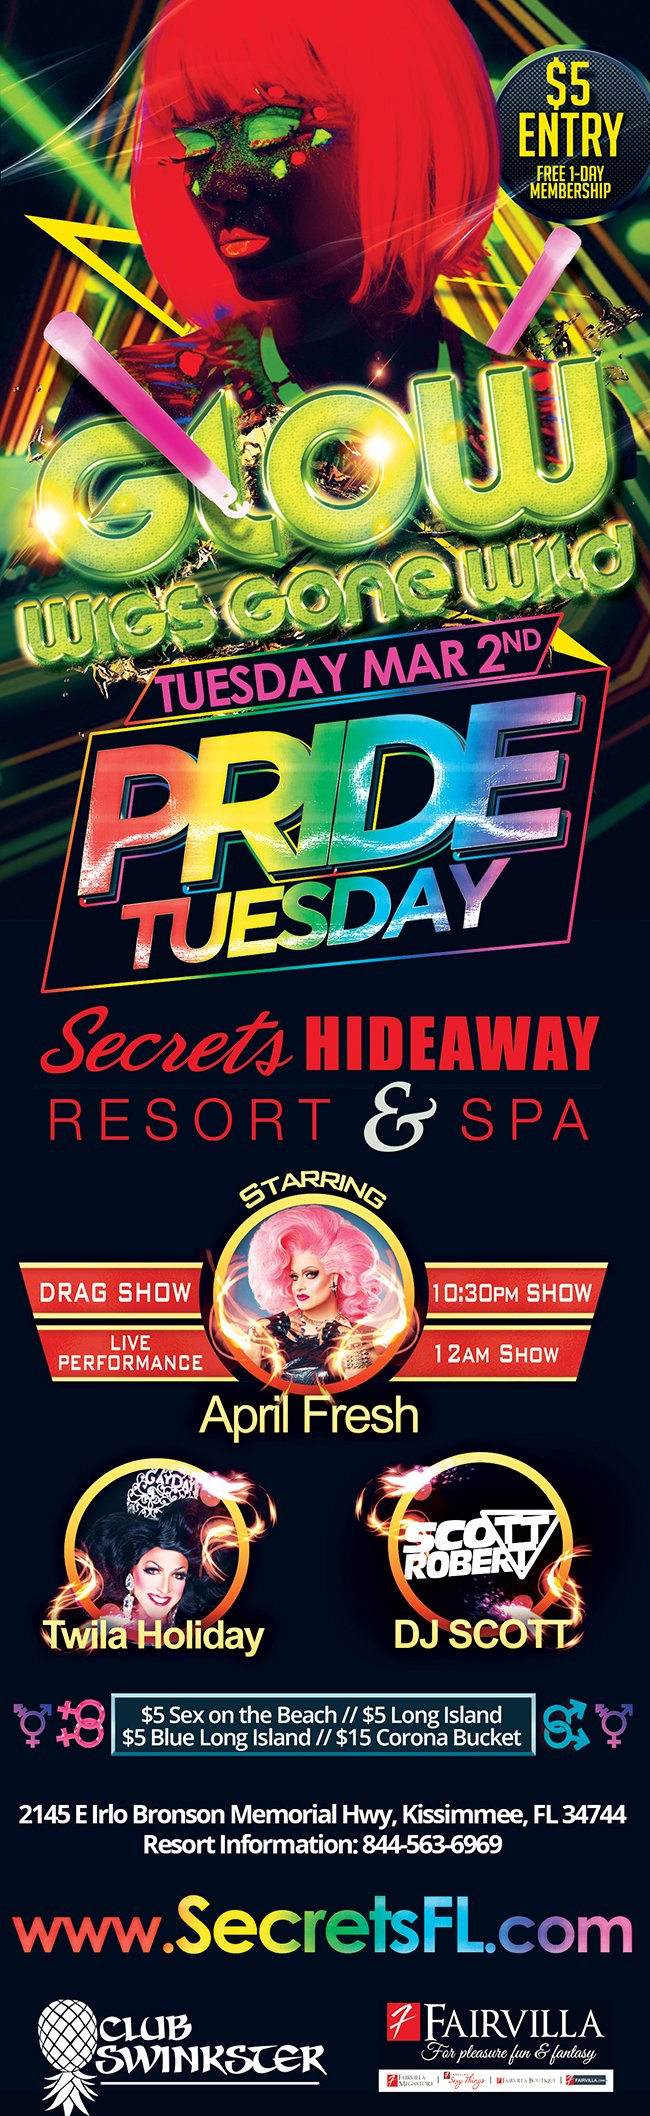 Events - Wigs Gone Wild Glow Night - Pride Tuesday Orlando, Florida Lifestyle and Swinger Parties